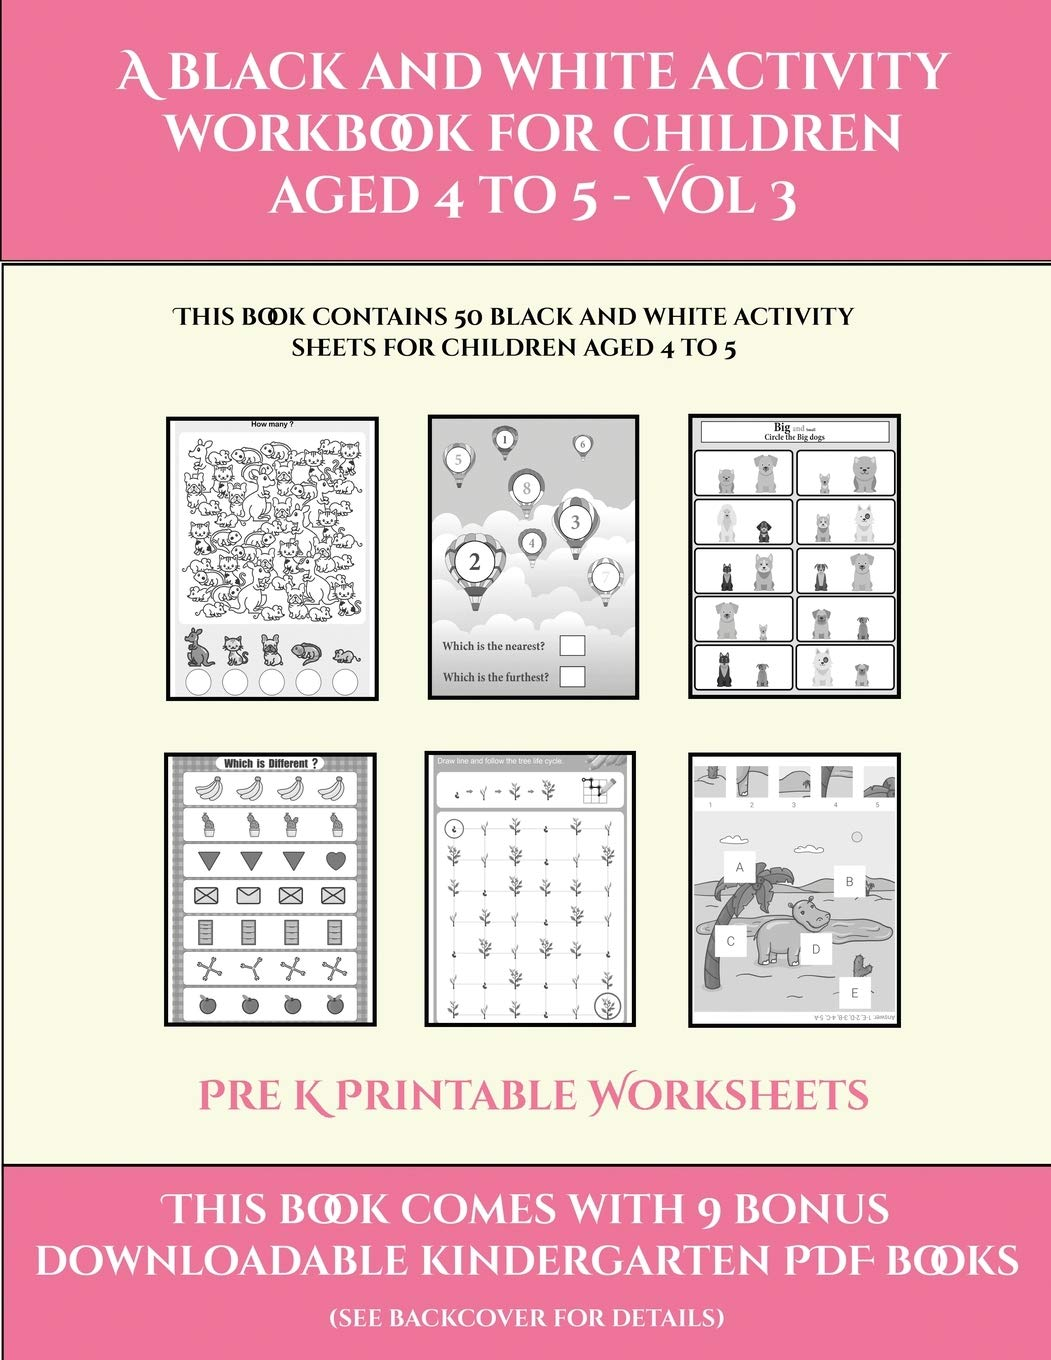 - Buy Pre K Printable Worksheets (A Black And White Activity